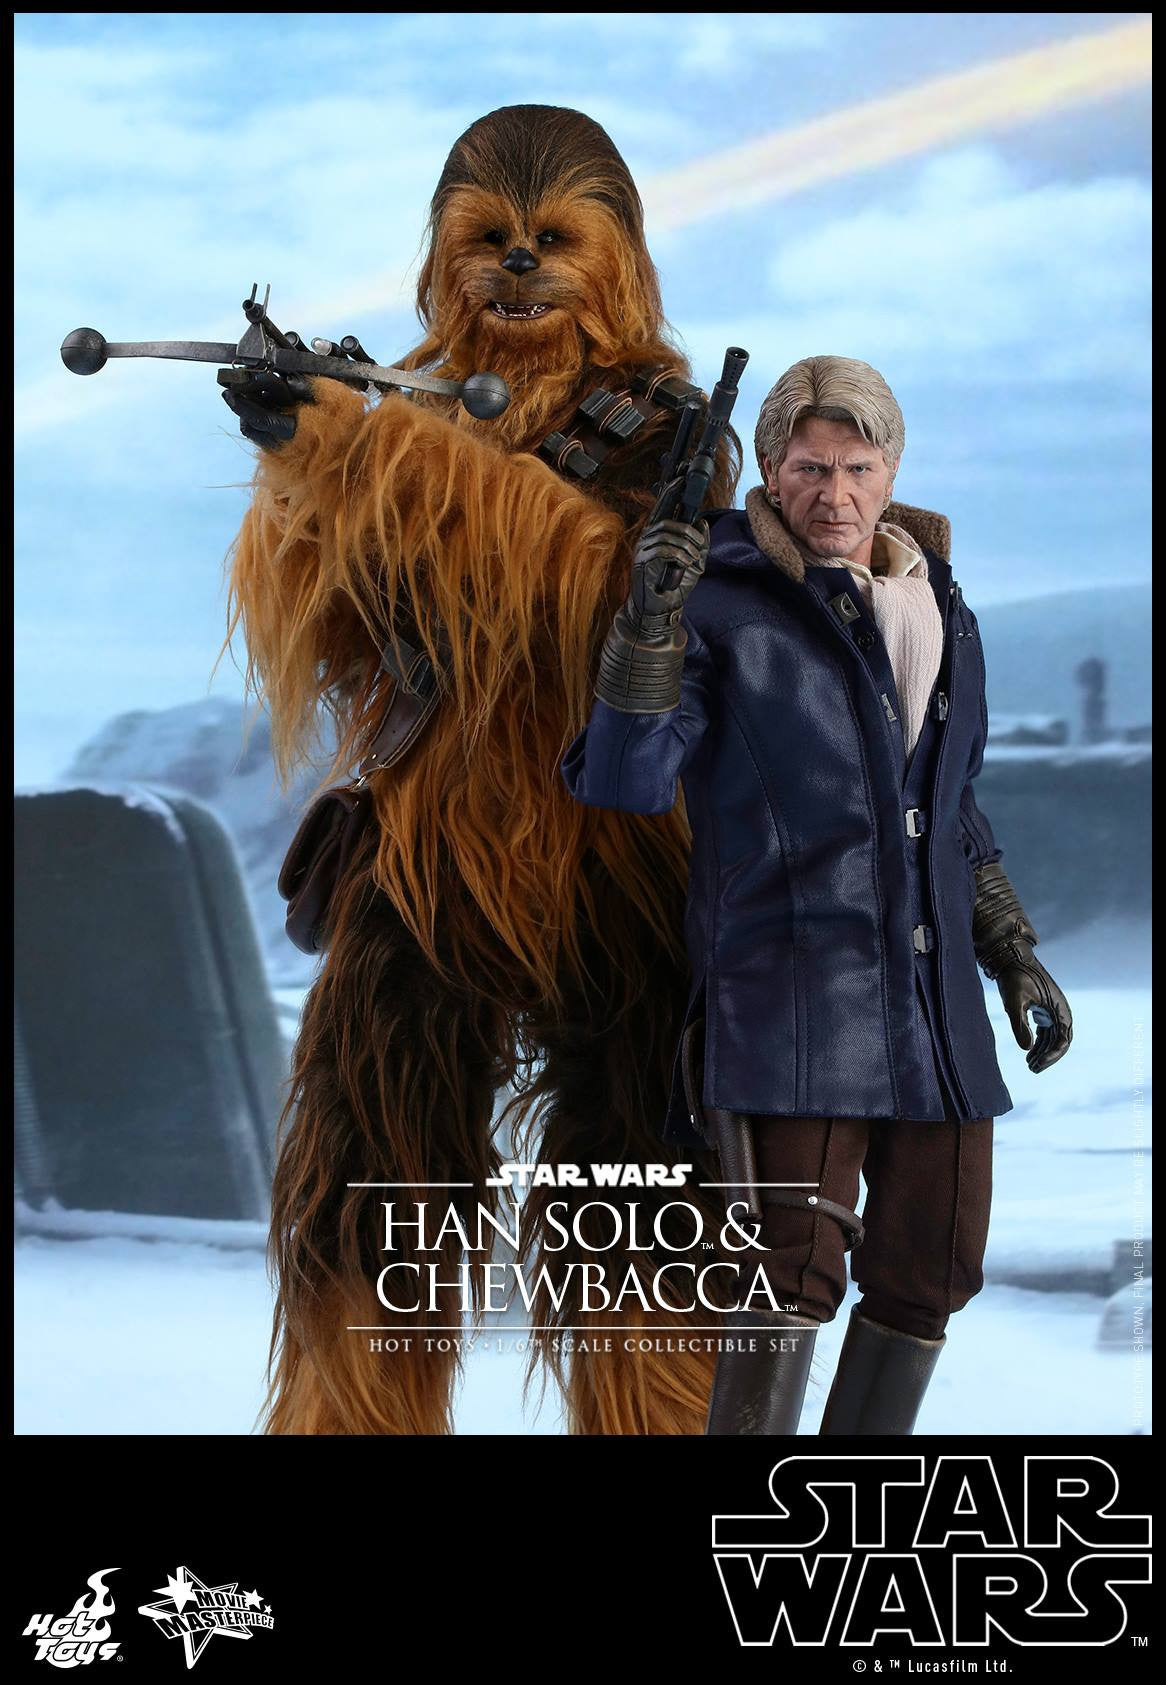 Hot Toys - MMS376 - Star Wars: The Force Awakens - Han Solo & Chewbacca Set - Marvelous Toys - 1